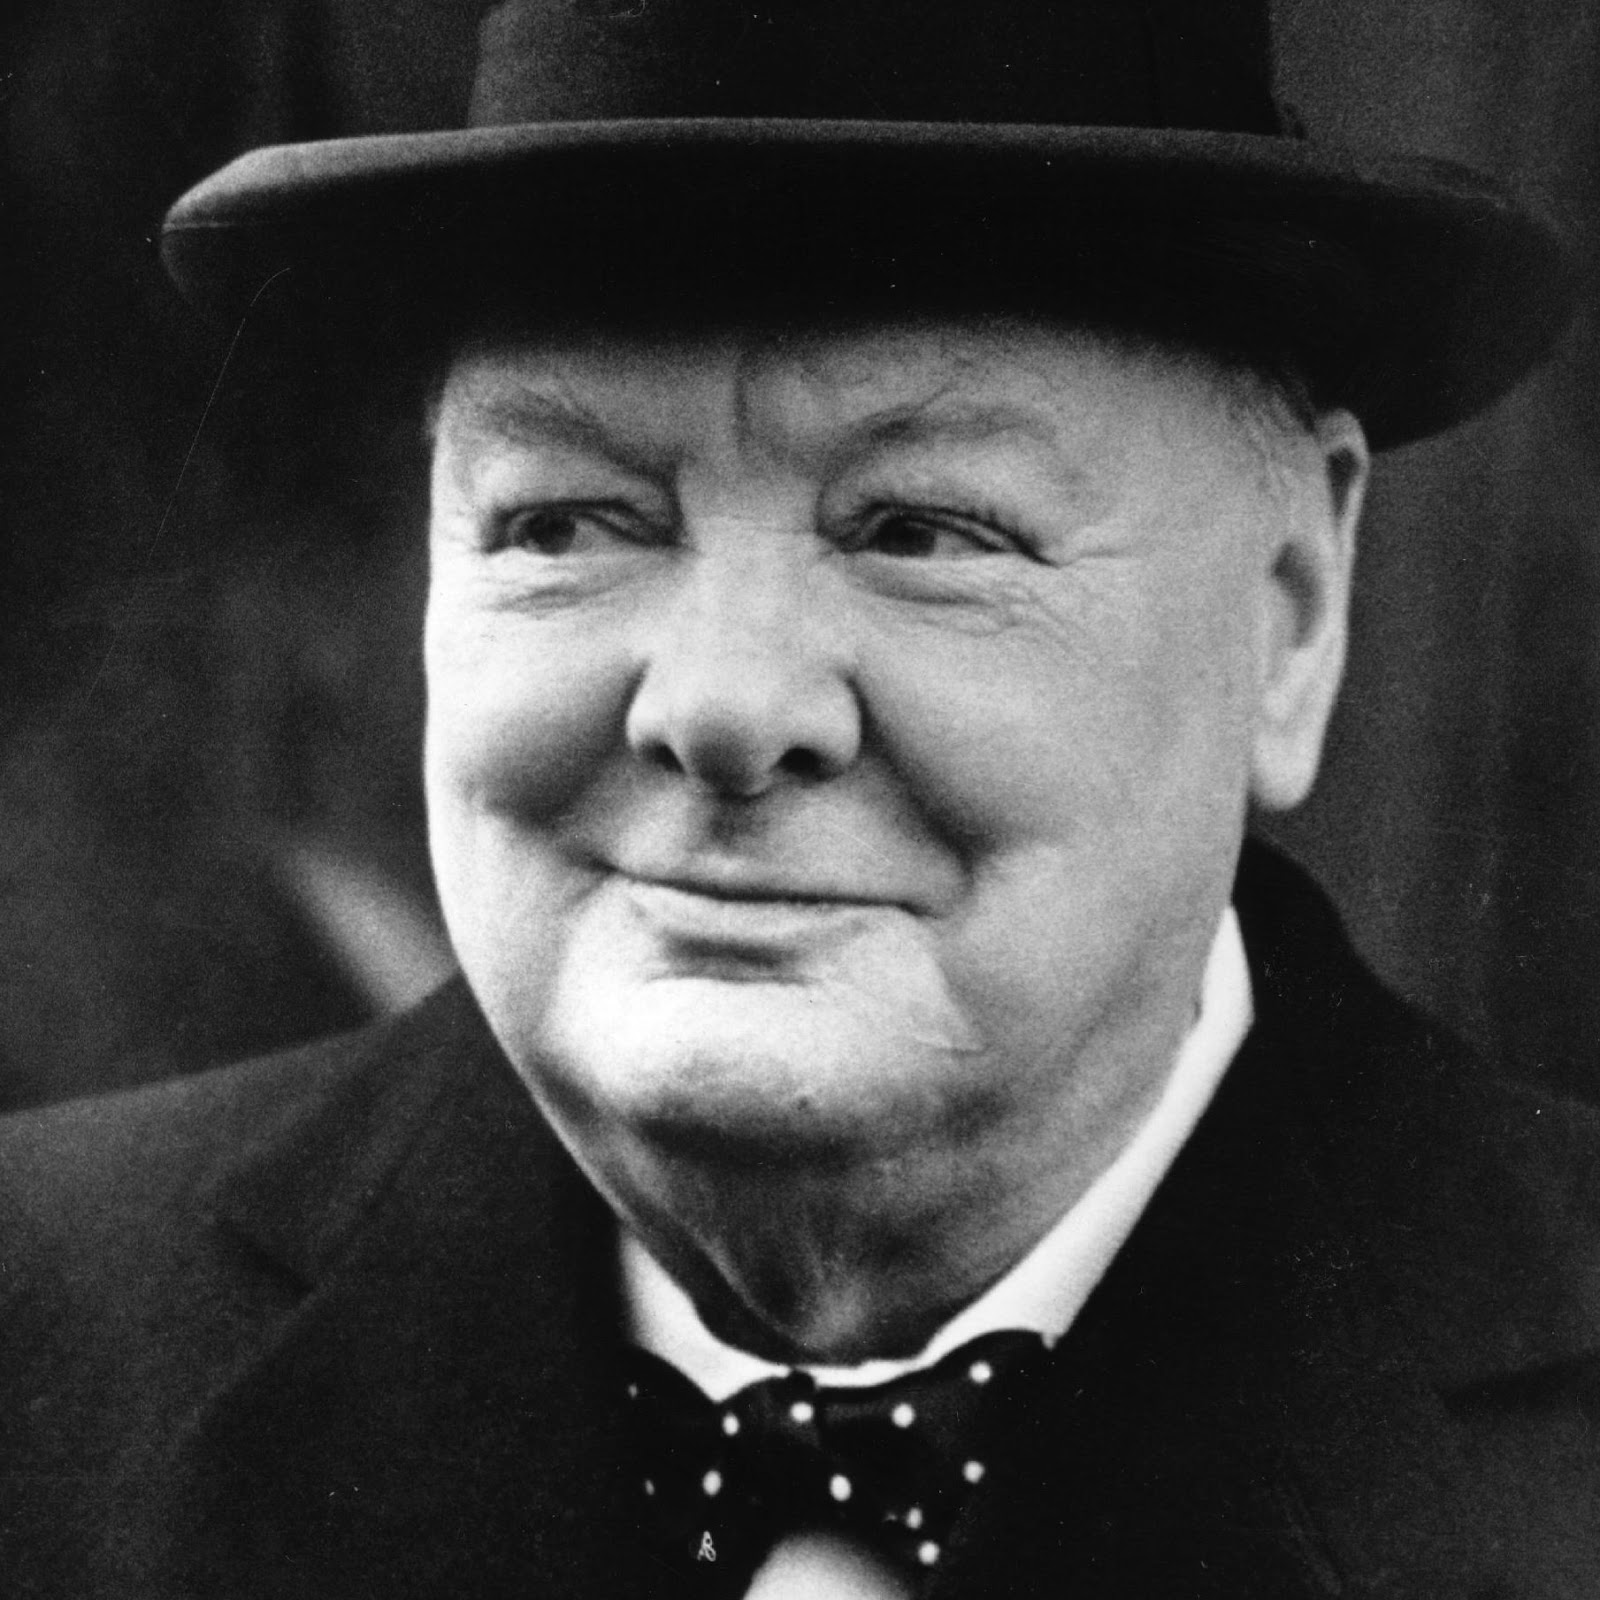 "Why was Winston Churchill so seemingly obsessed with the ""soft underbelly"" of the enemy? He backed both the failed Galippoli invasion in WW1 and the underwhelming Italian Campaign in WW2."